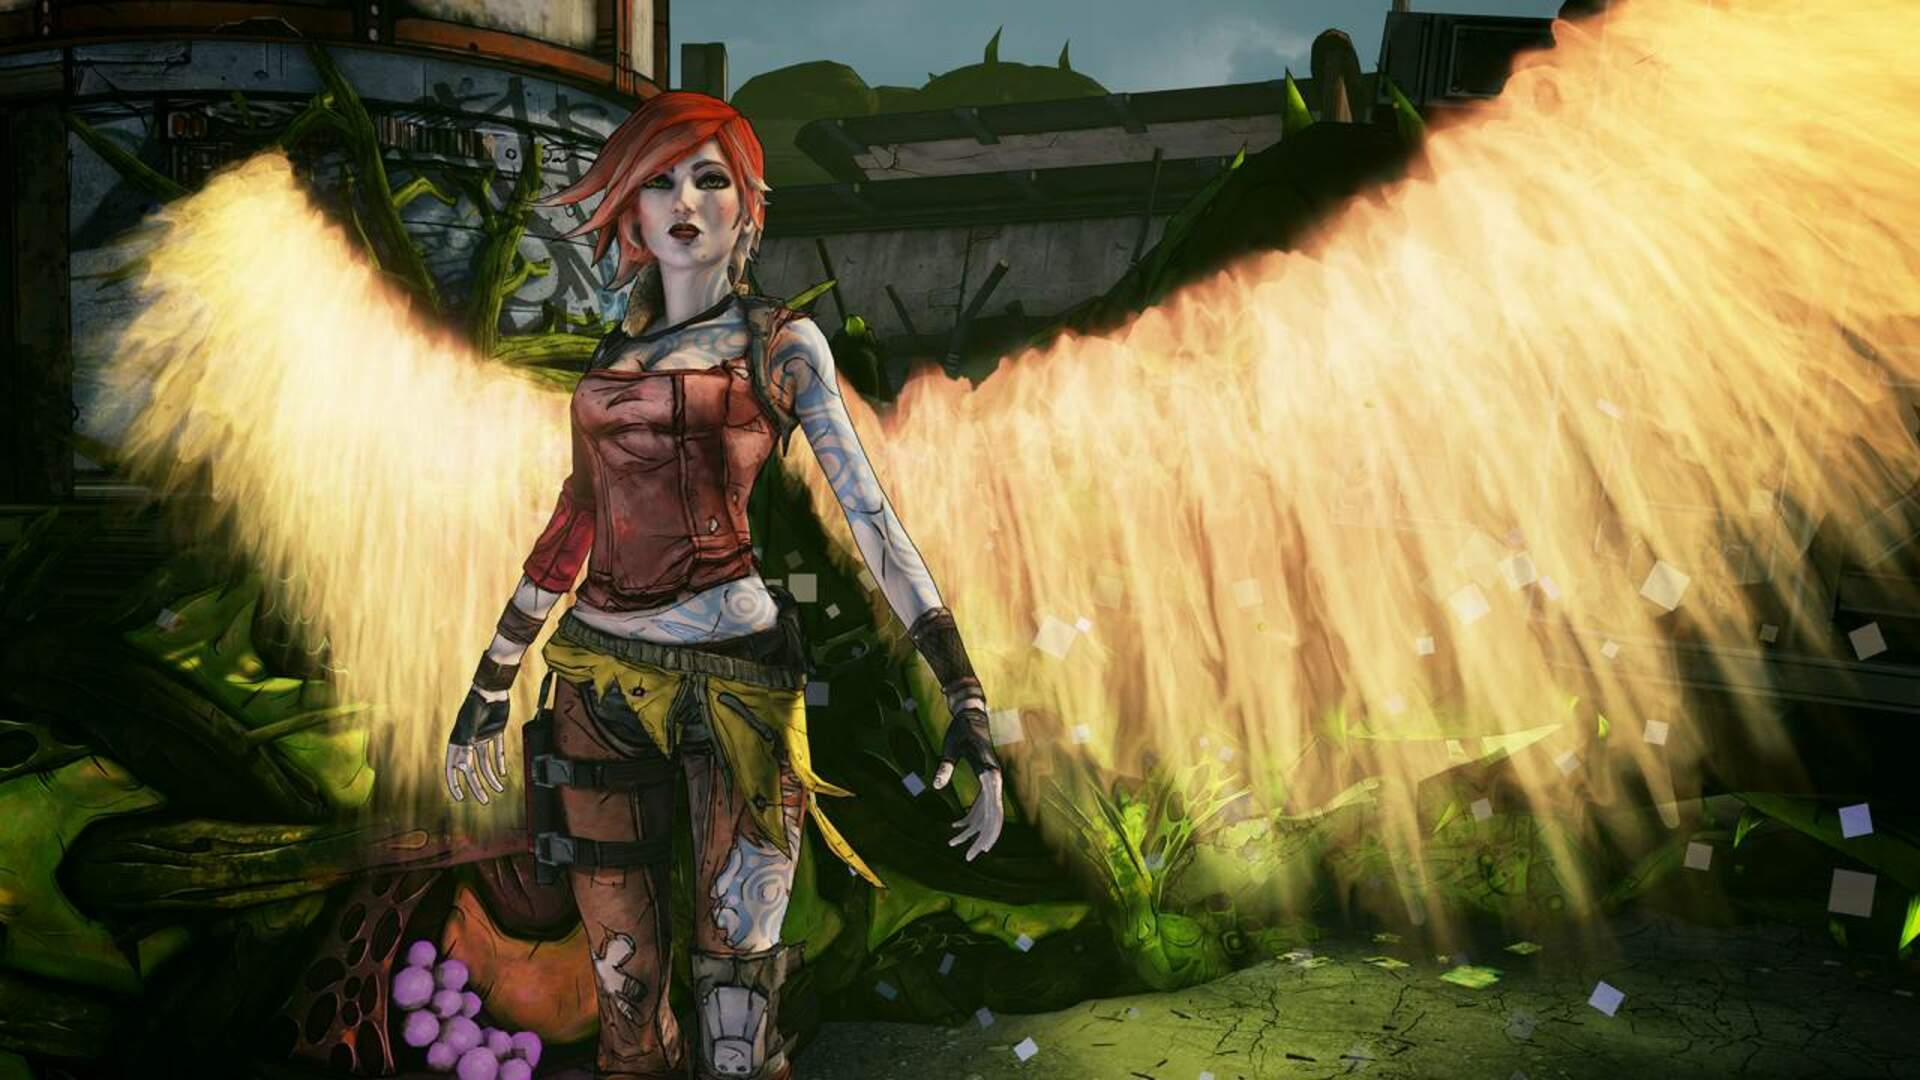 Borderlands 2 DLC Leading Into Borderlands 3 Leaks on Steam